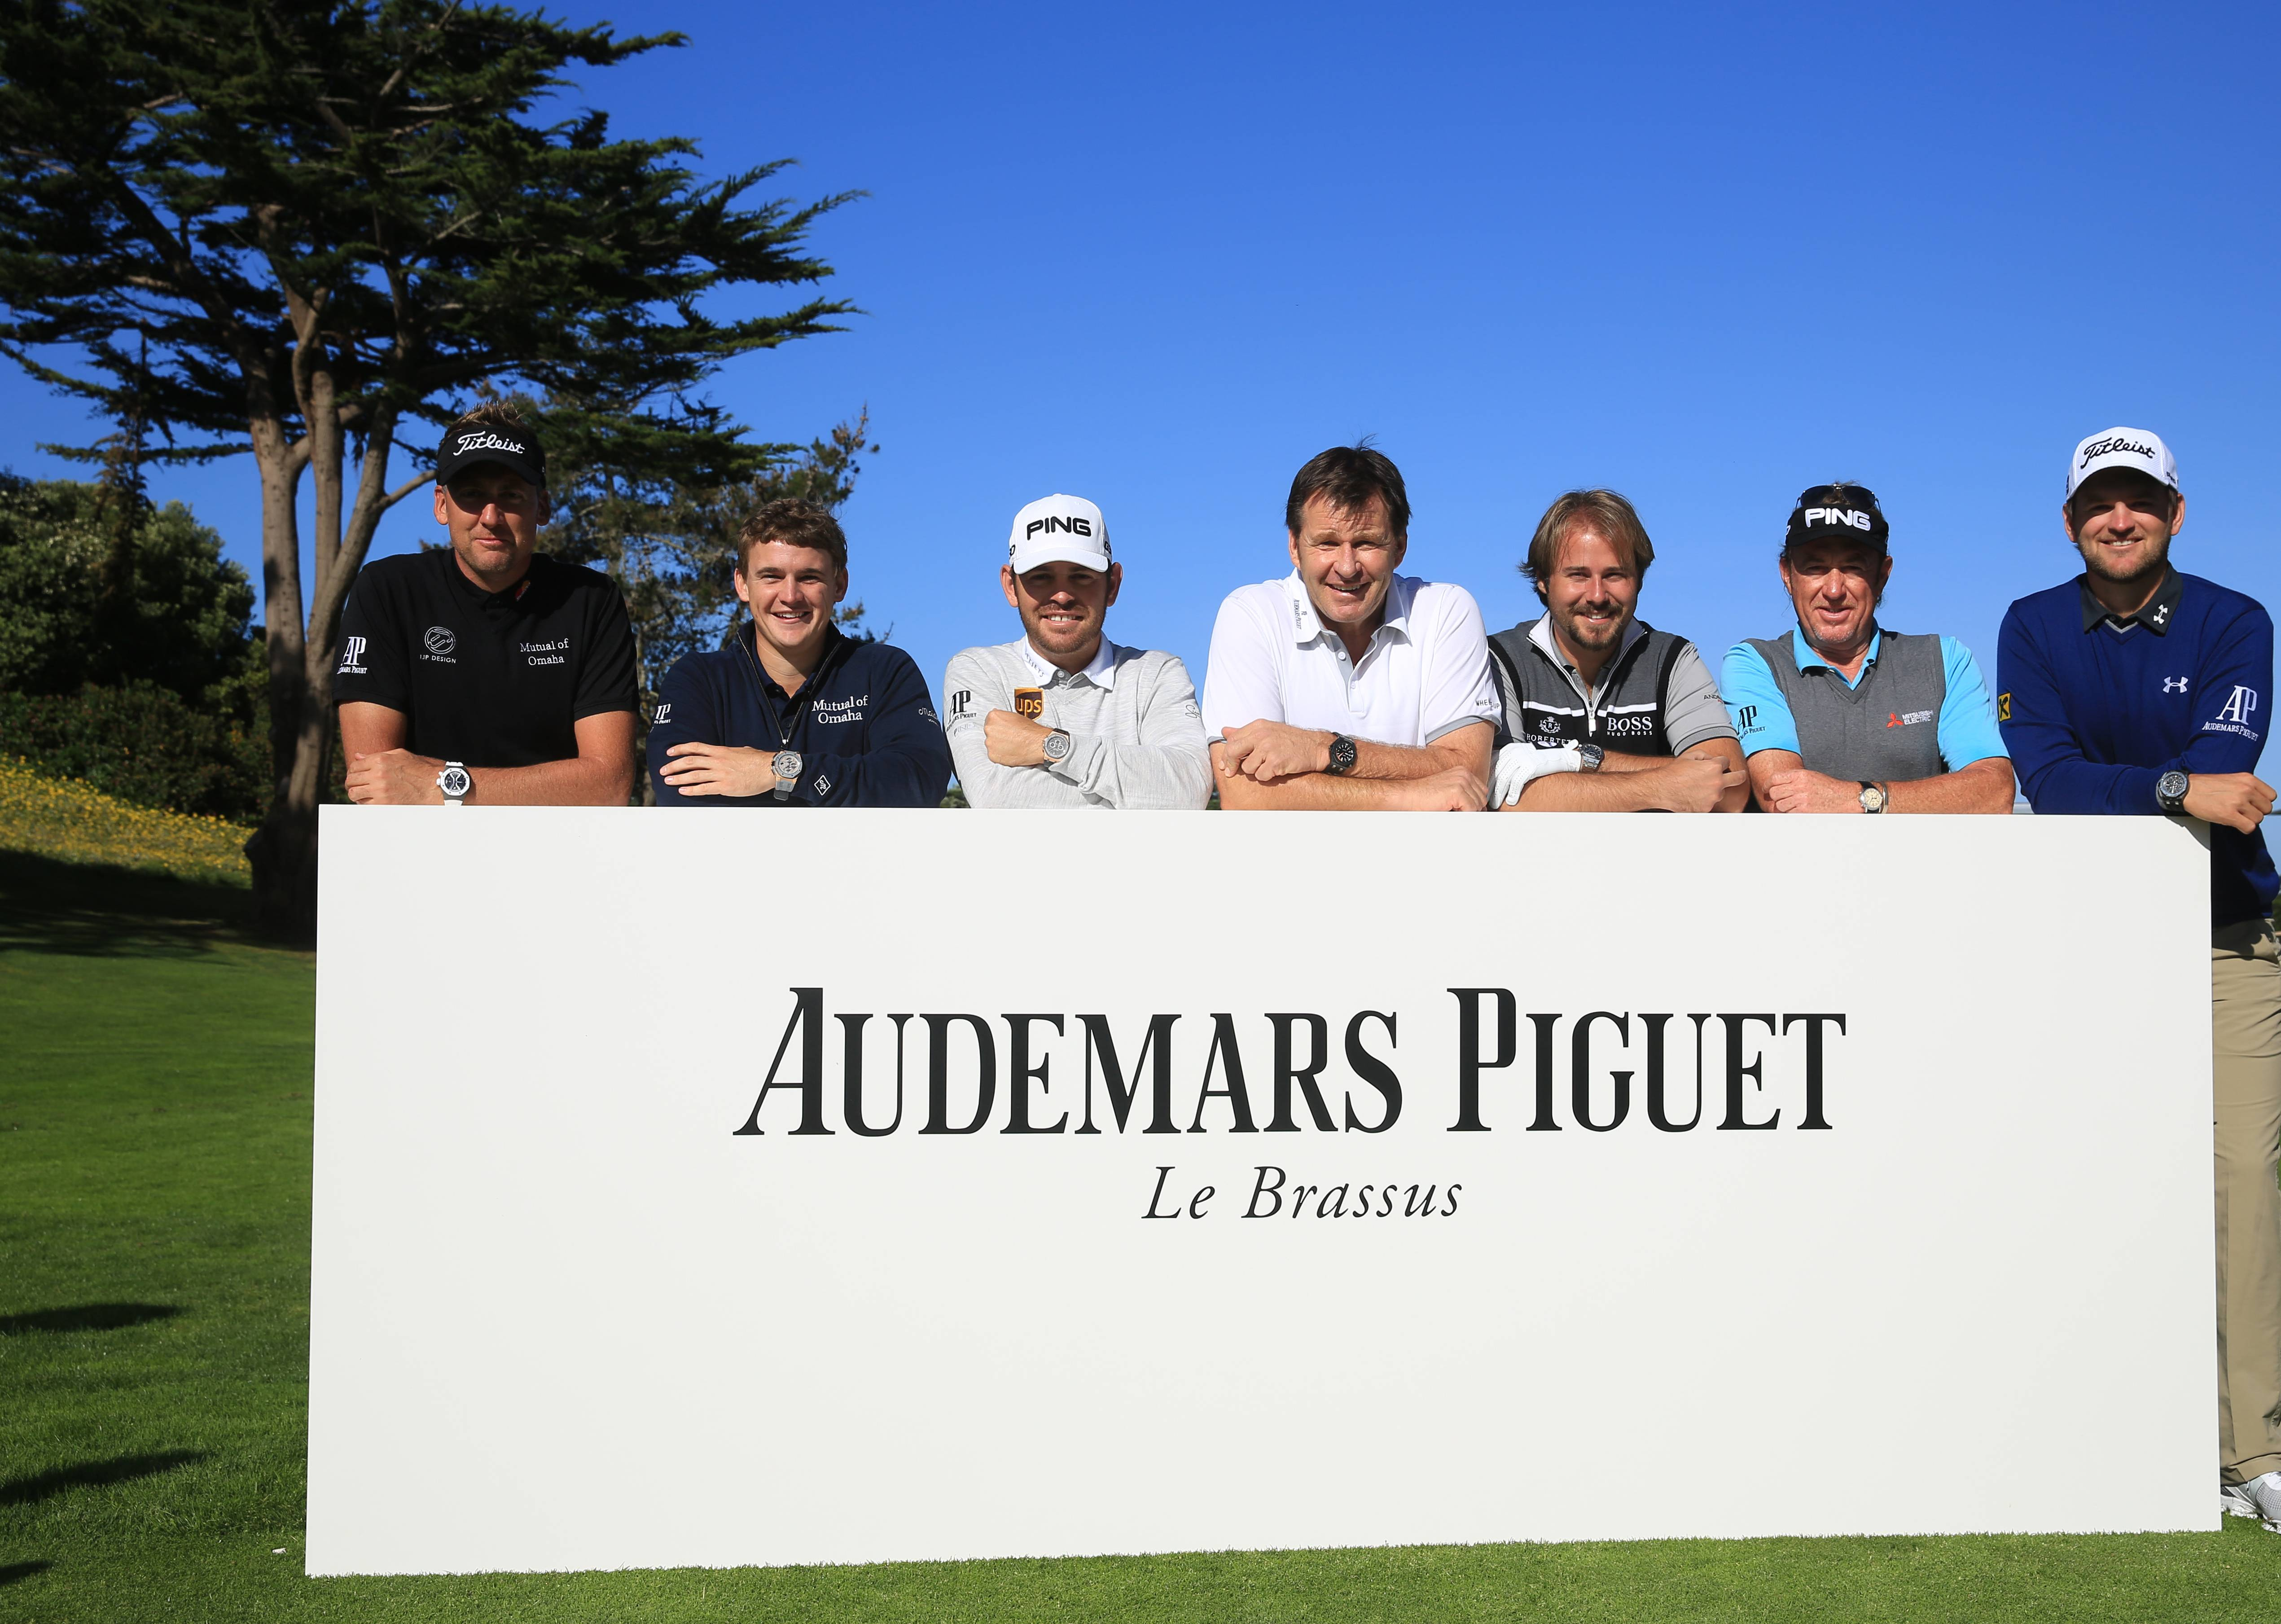 miami al and nancy malnik s annual make a wish garden party audemars piguet hosts fourth international golf invitational tour nt in san francisco